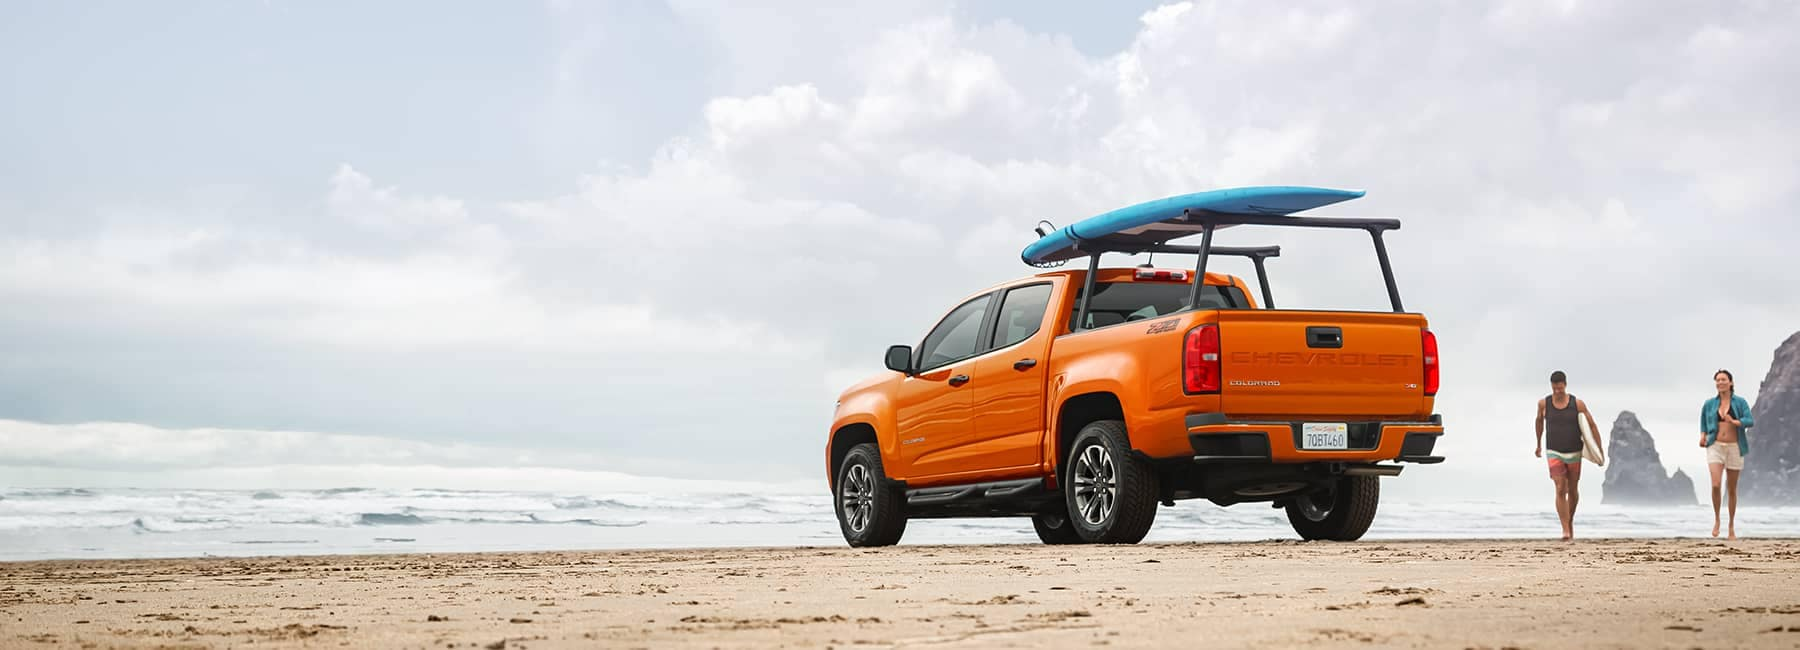 Orange Chevrolet Truck on the beach